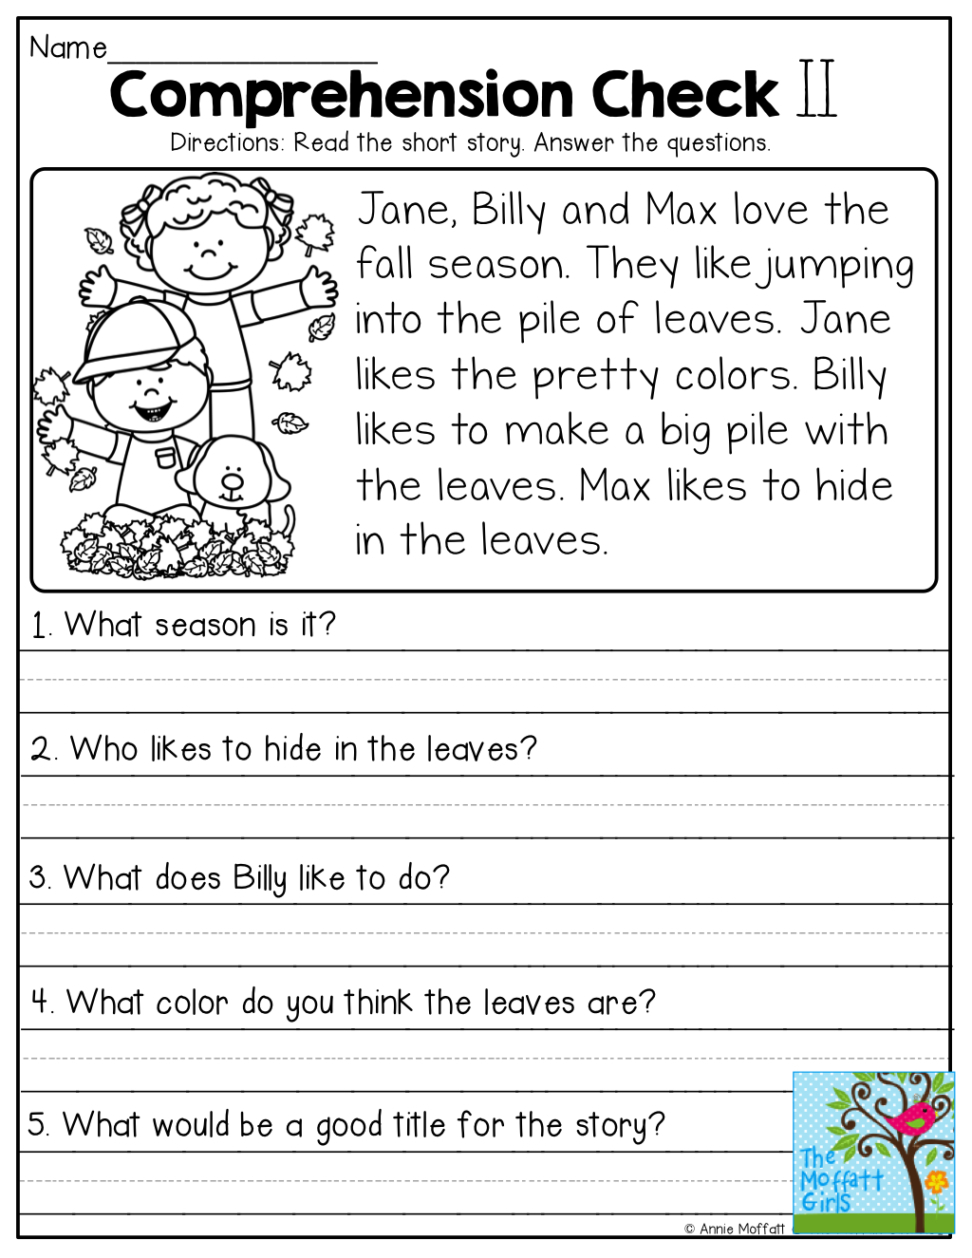 Worksheet. Free Printable Reading Comprehension Worksheets - Free | Printable Reading Worksheets